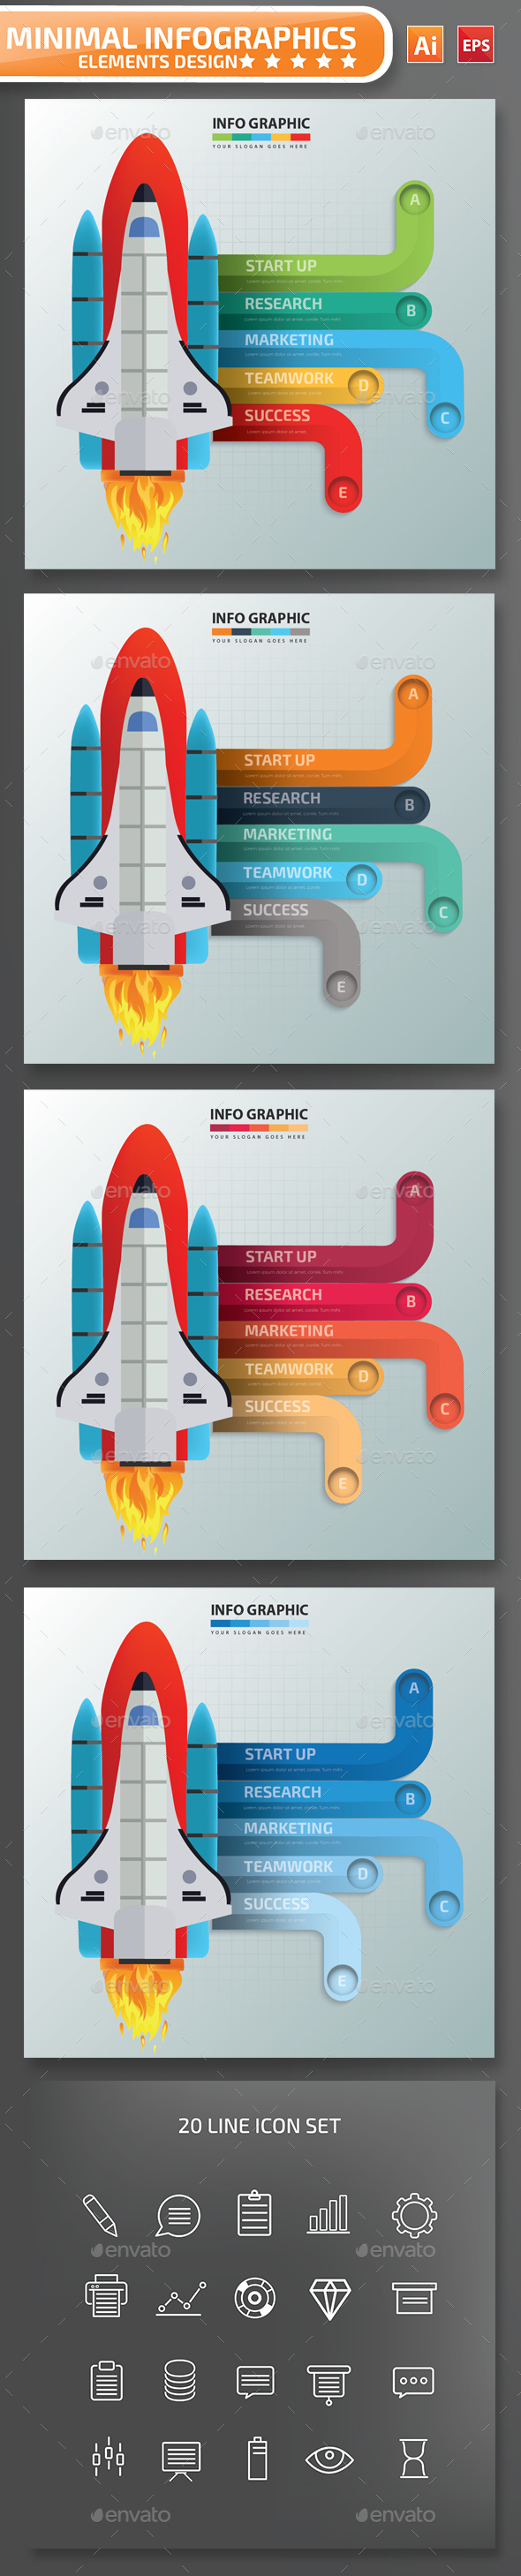 Minimal Start up infographic Design - Infographics